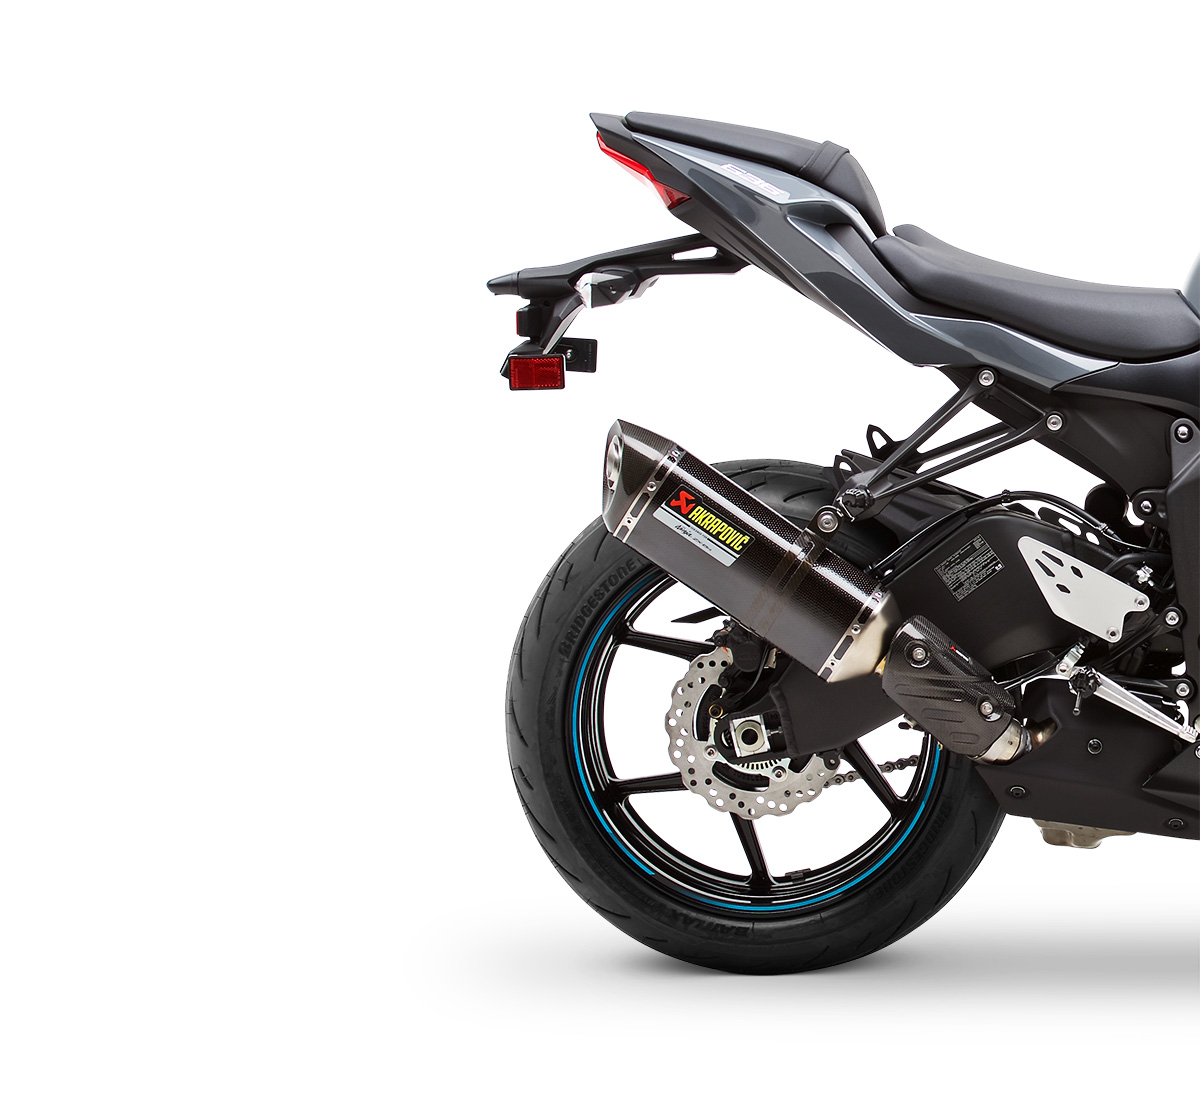 Motorcycle Ninja Zx 6r Akrapovic Slip On Exhaust